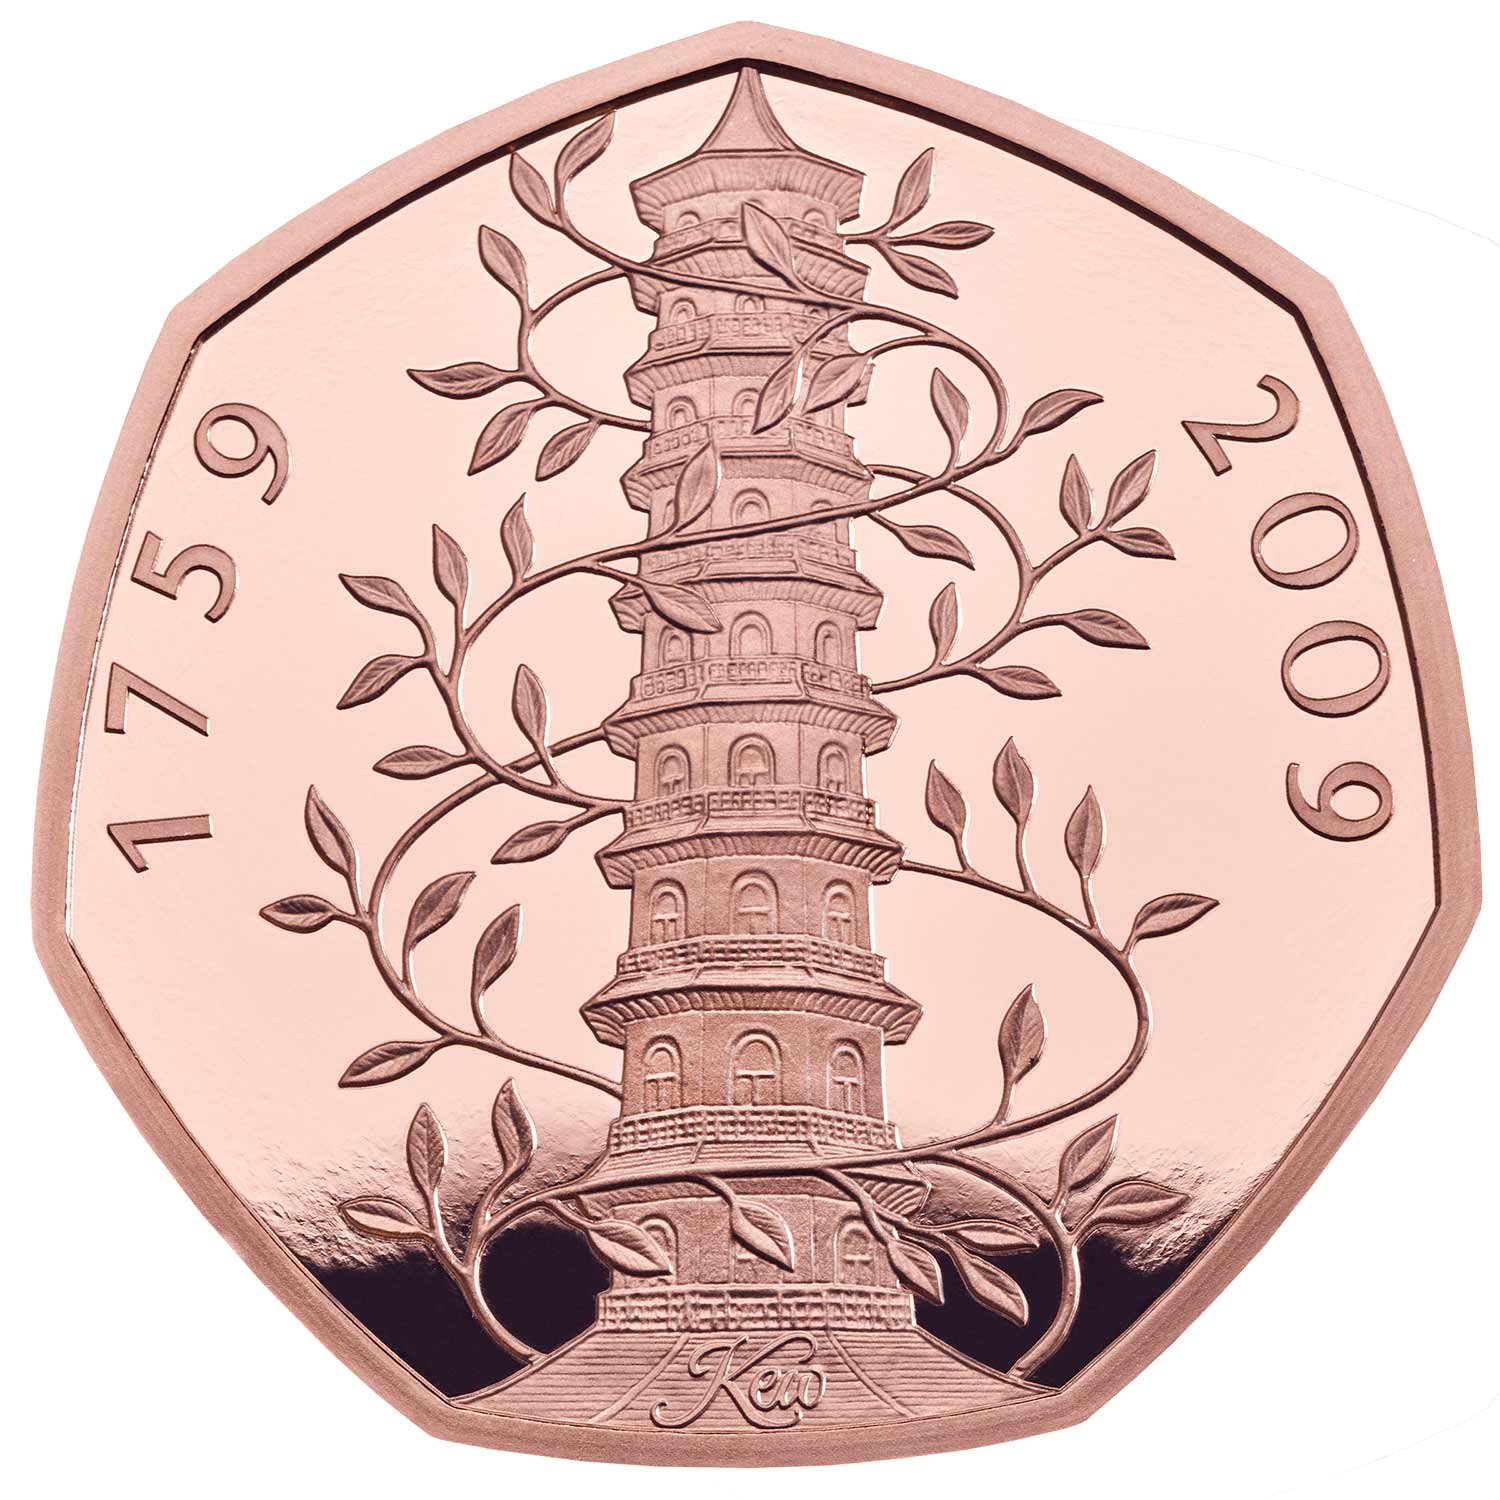 2019 Kew Gardens 50p Gold Proof